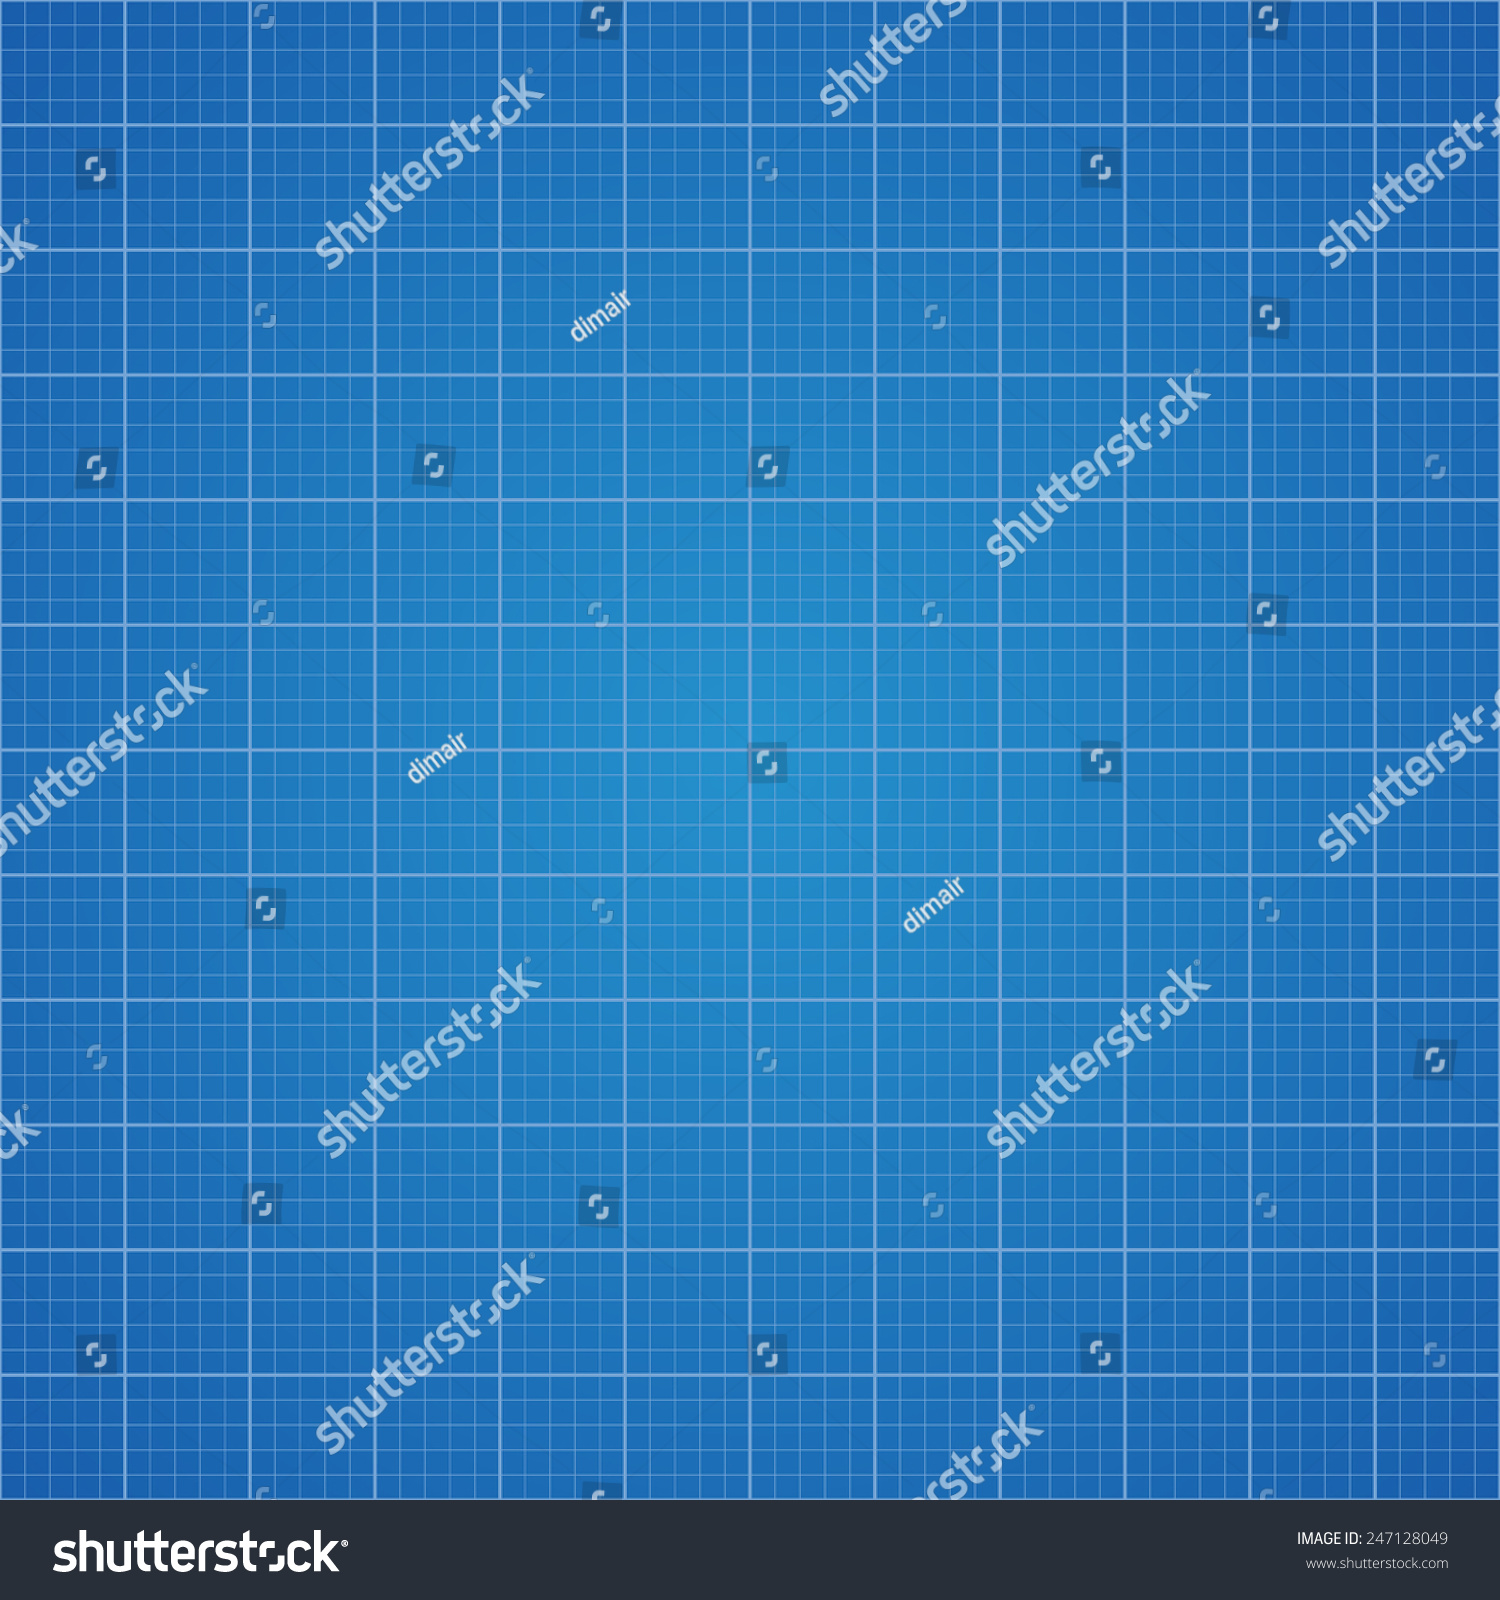 8x11 paper Half letter paper size and other dimensions in the us series, metric and imperial.